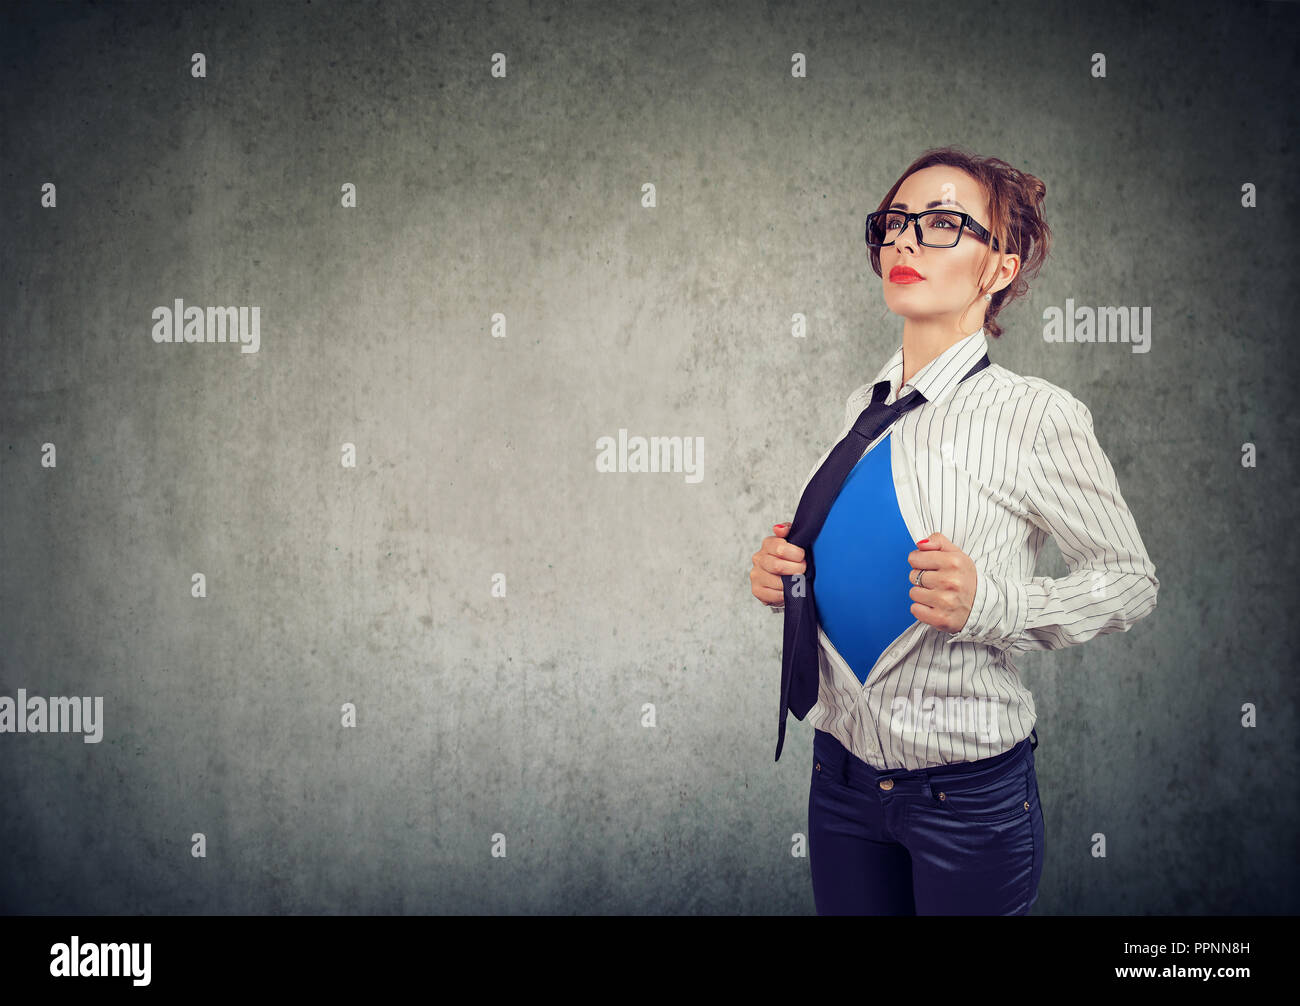 Businesswoman showing a super hero suit underneath her shirt - Stock Image